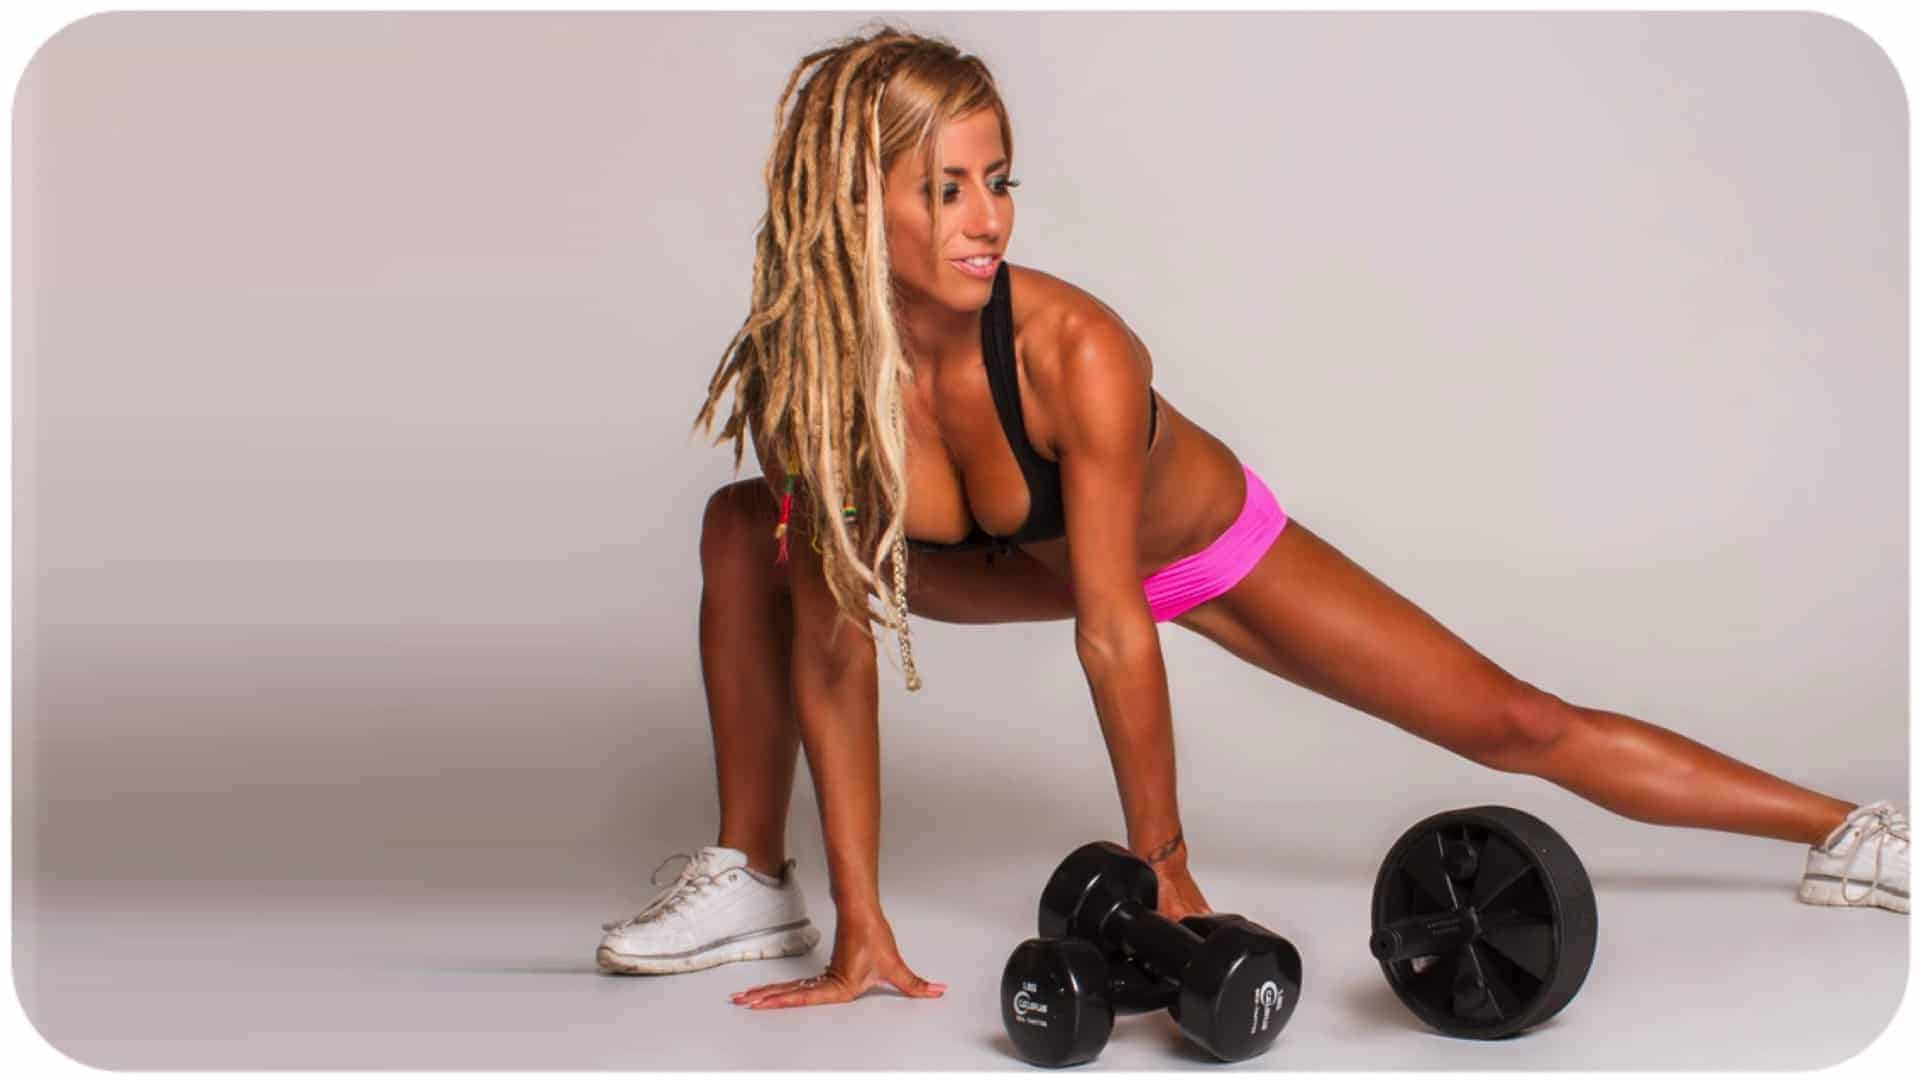 Vegan body builder Crissi Carvalho is seen in a body building pose showing an incredibly toned body .